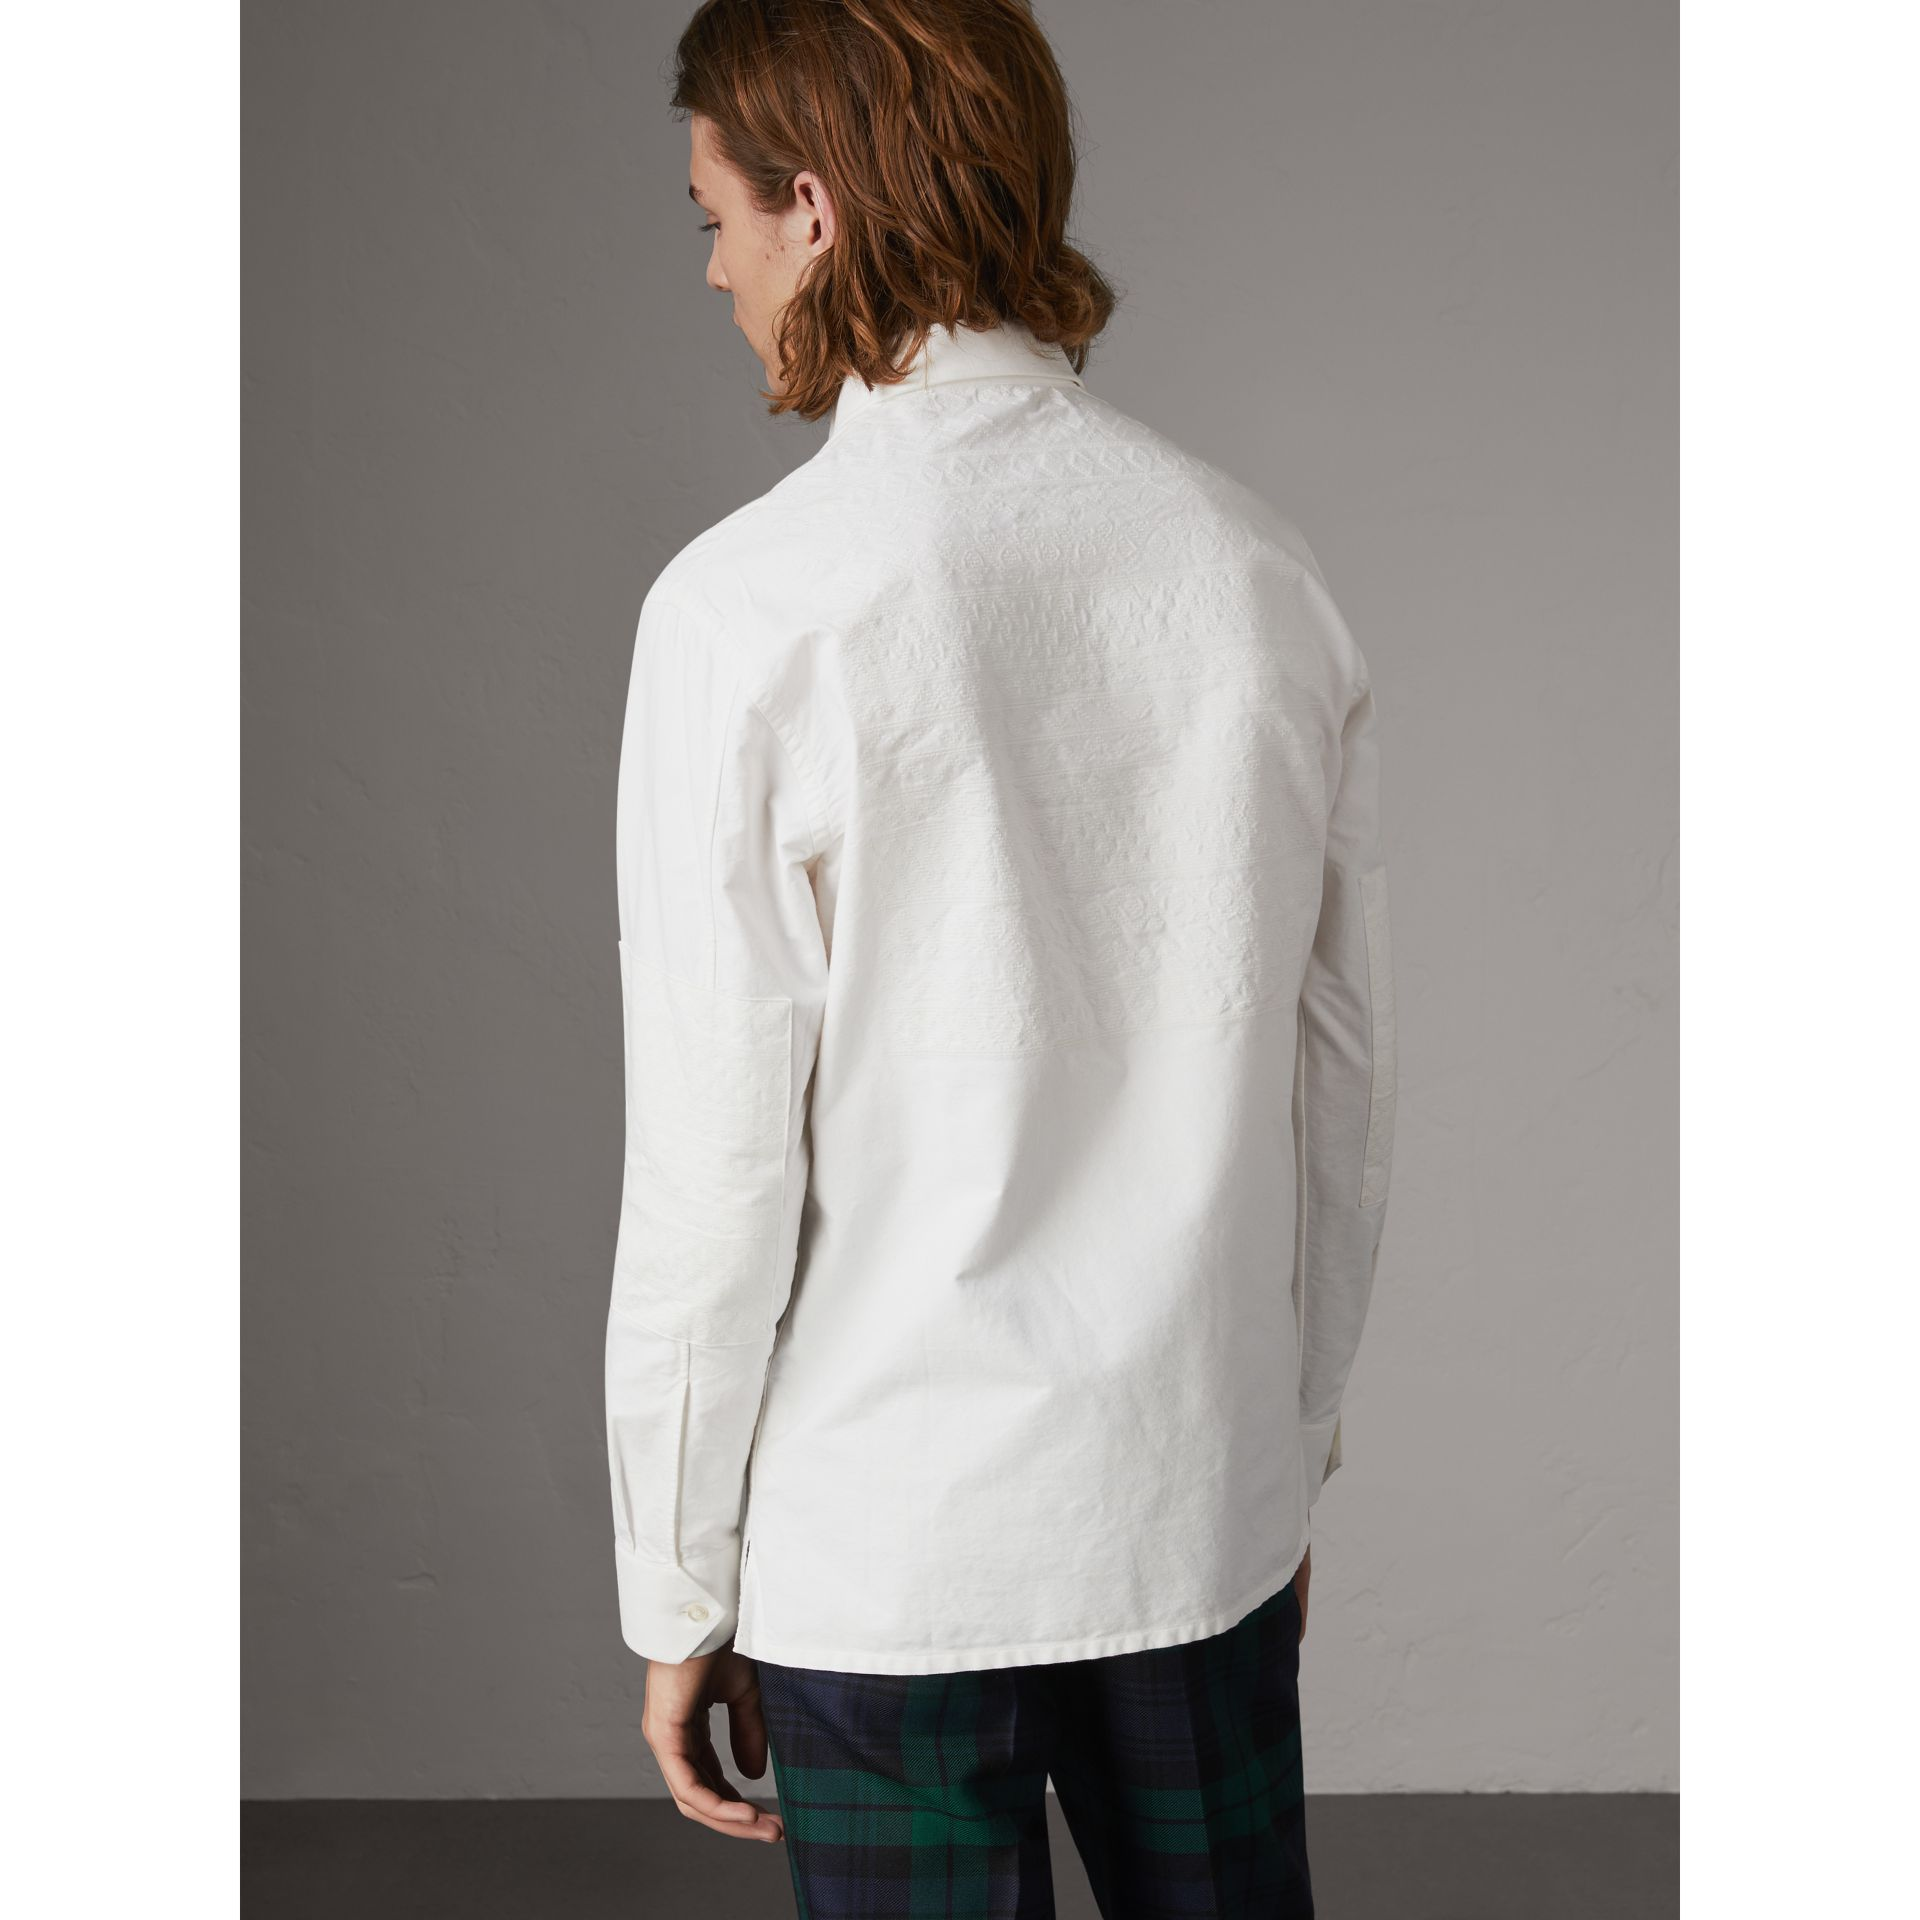 Embroidered Oxford Cotton Longline Shirt in White - Men | Burberry Singapore - gallery image 2